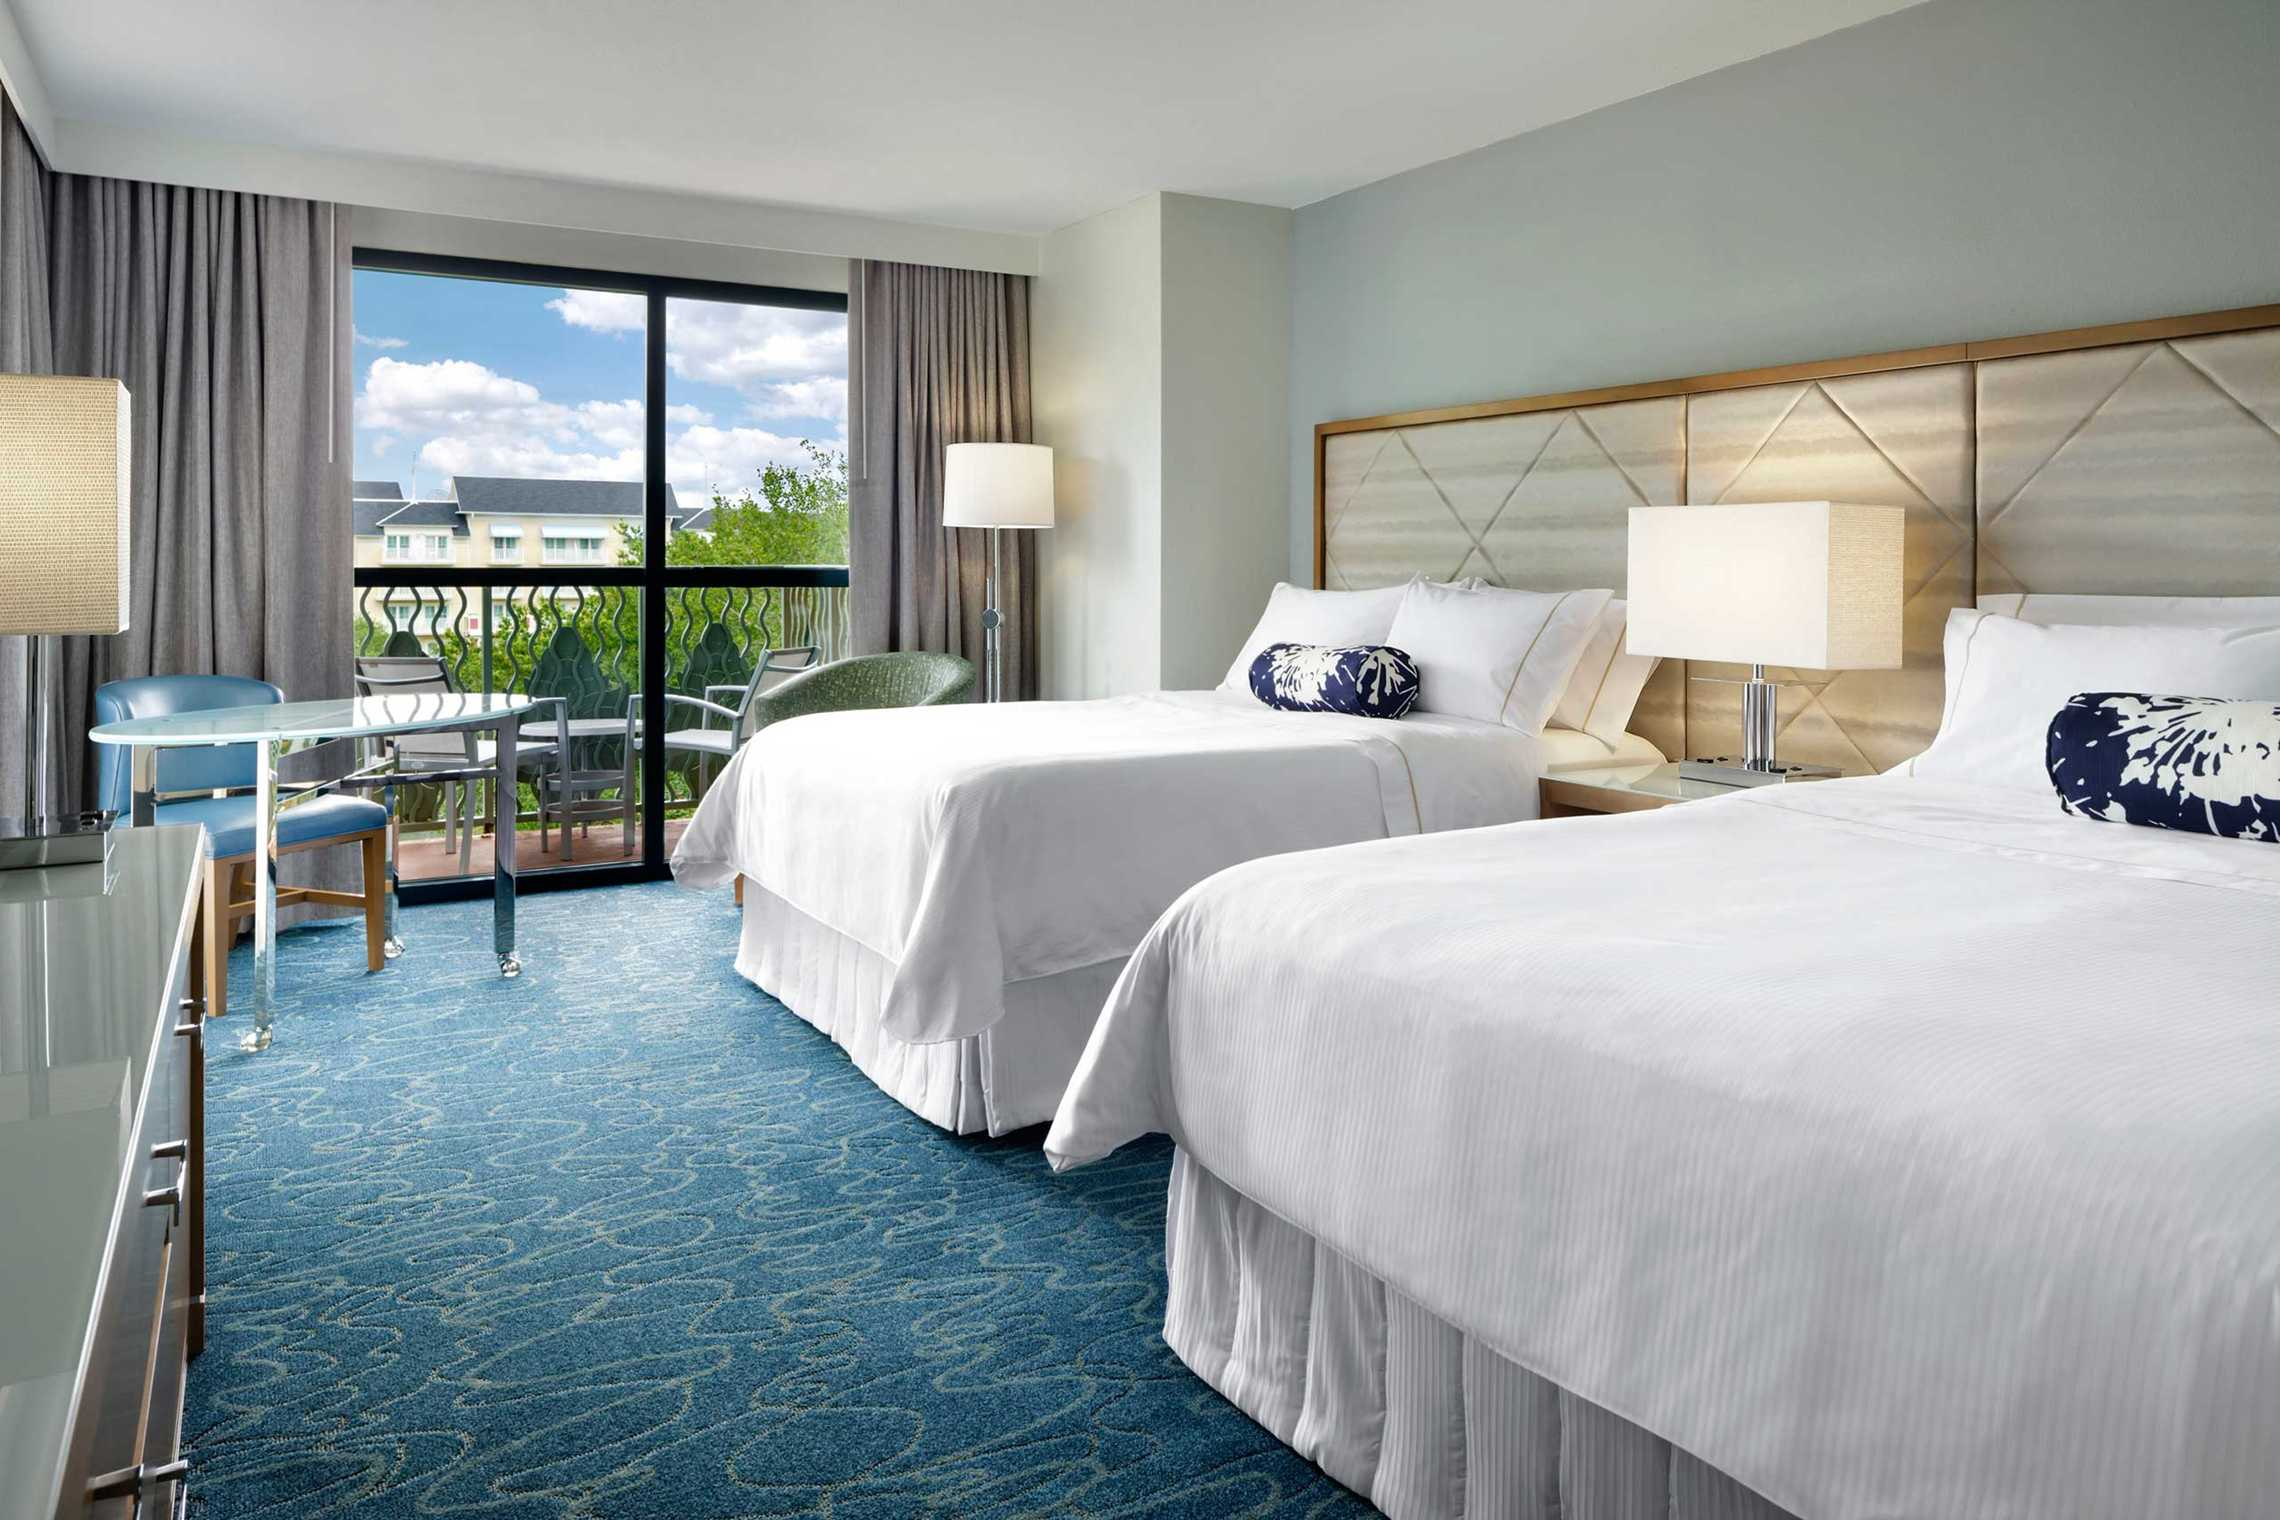 Walt disney world swan rooms photo 2 of 3 for World hotels deluxe